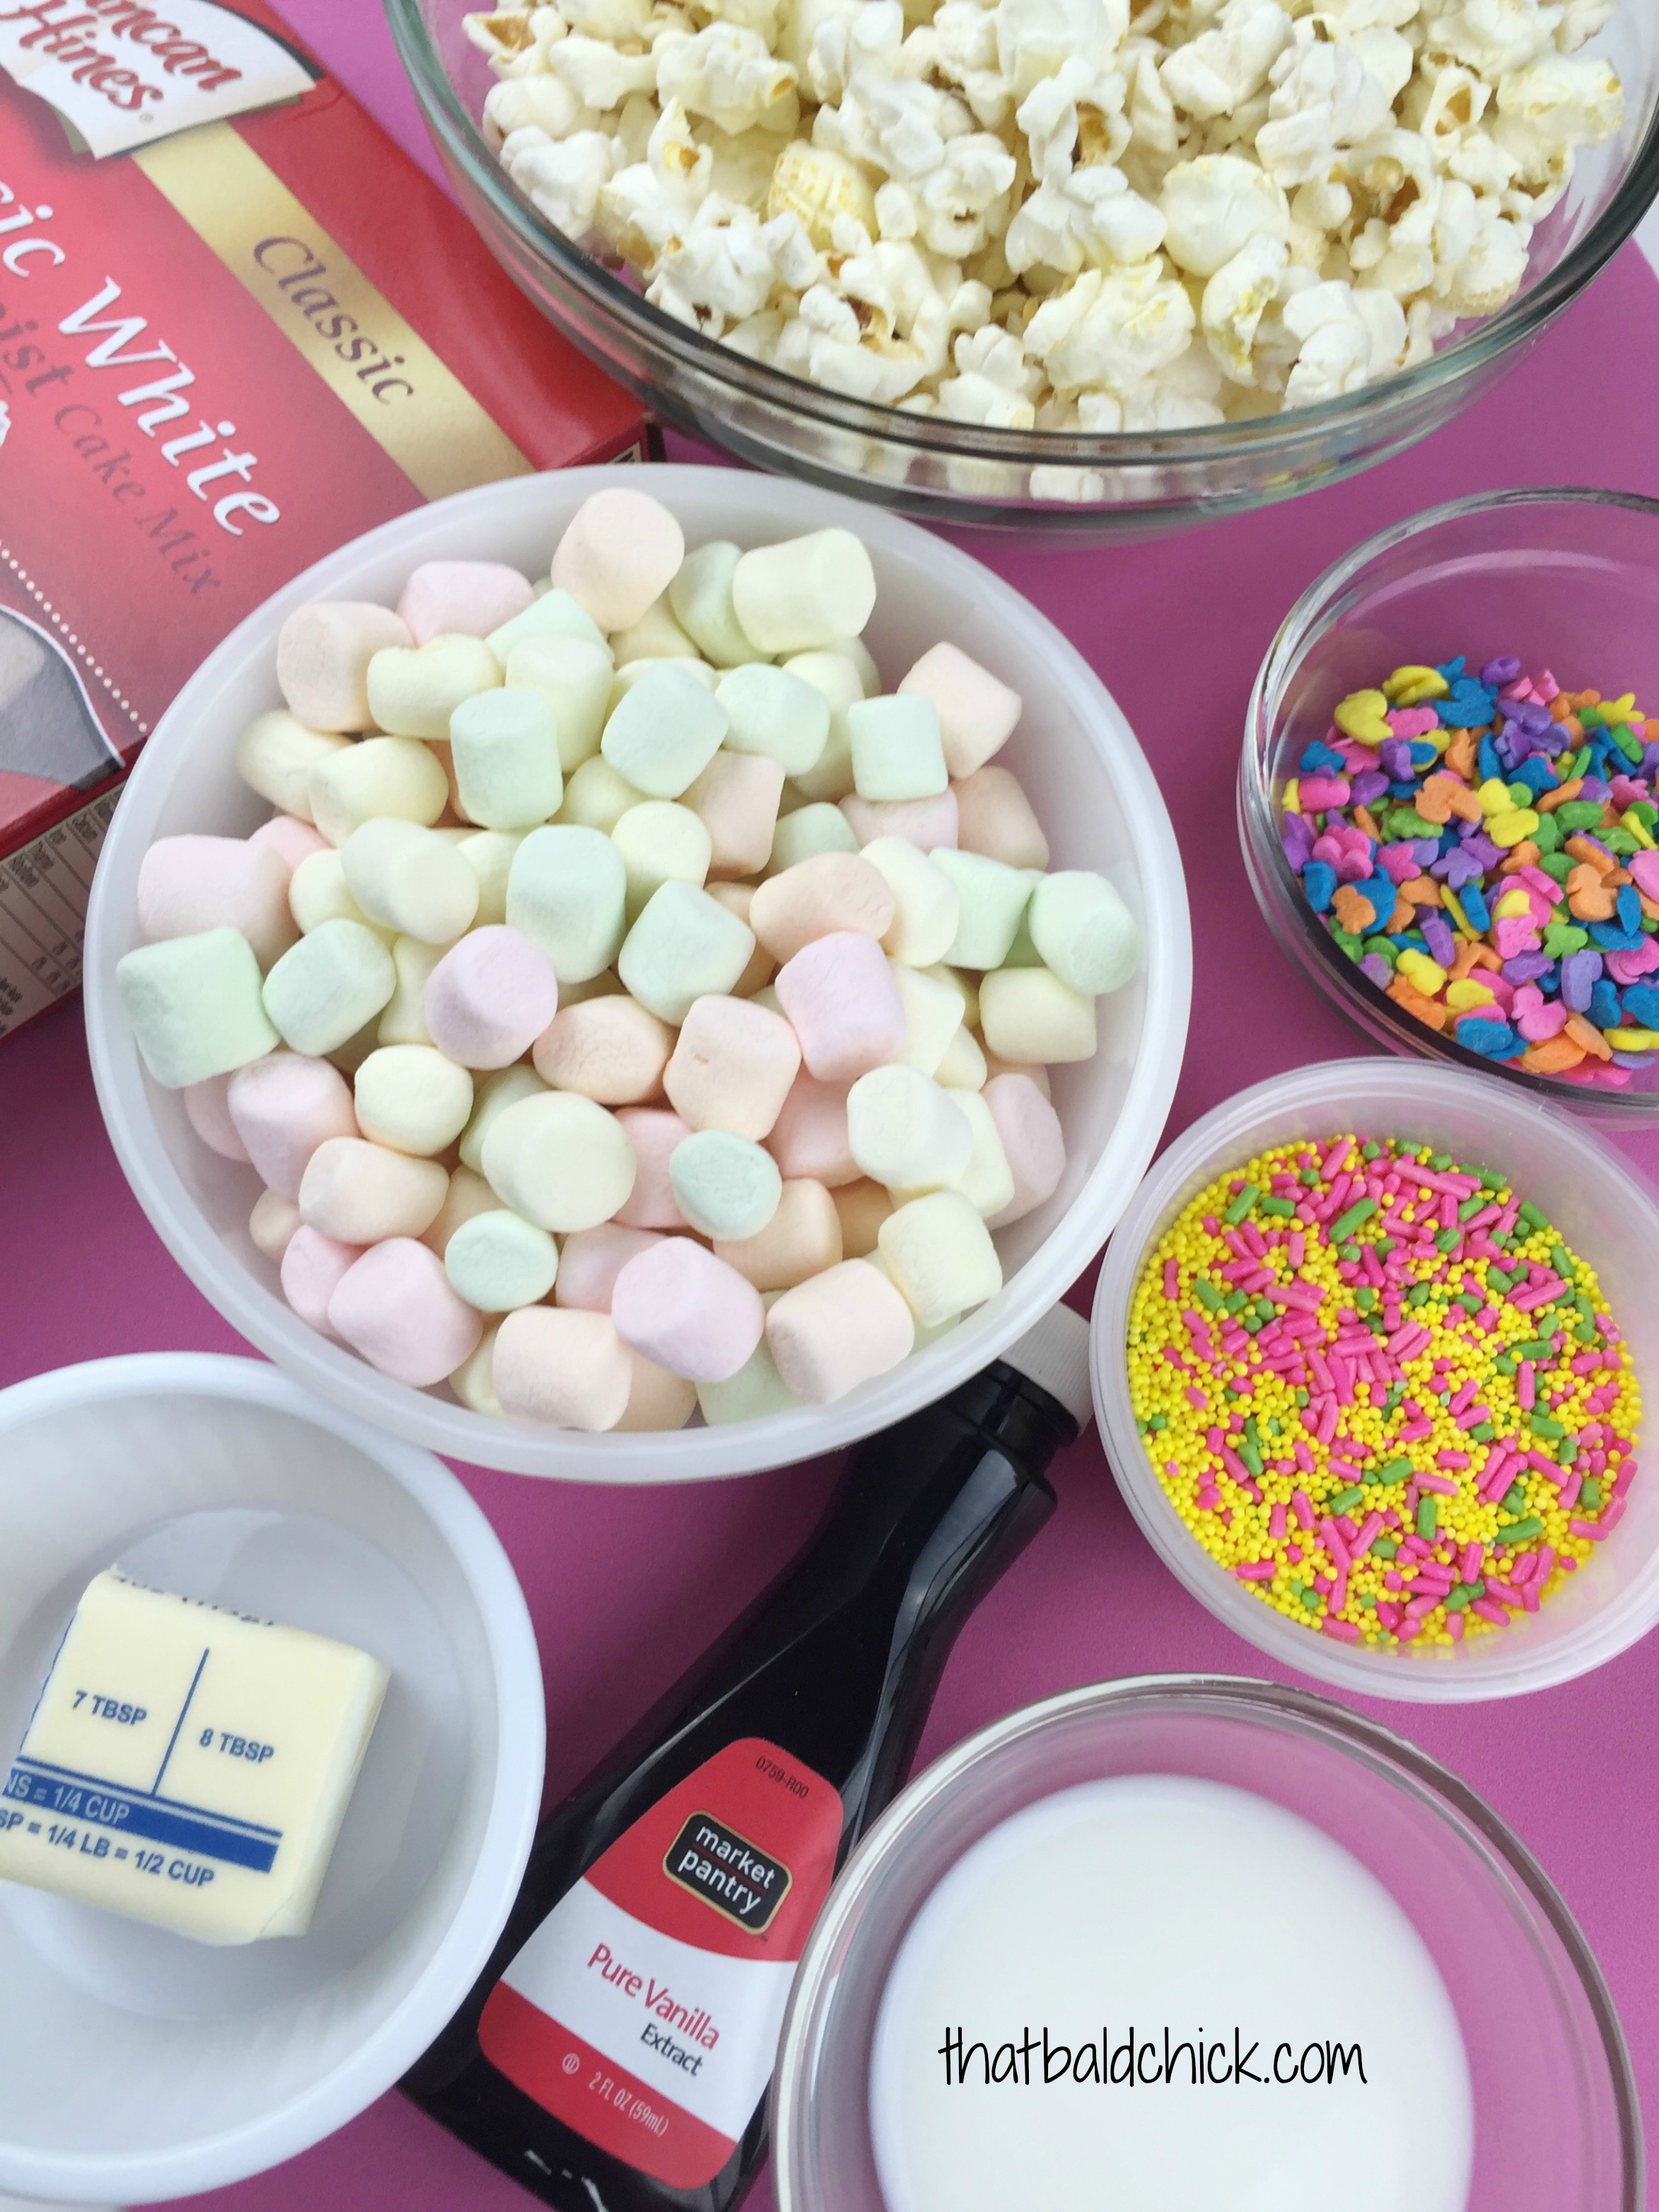 Springtime Marshmallow Popcorn Ingredients